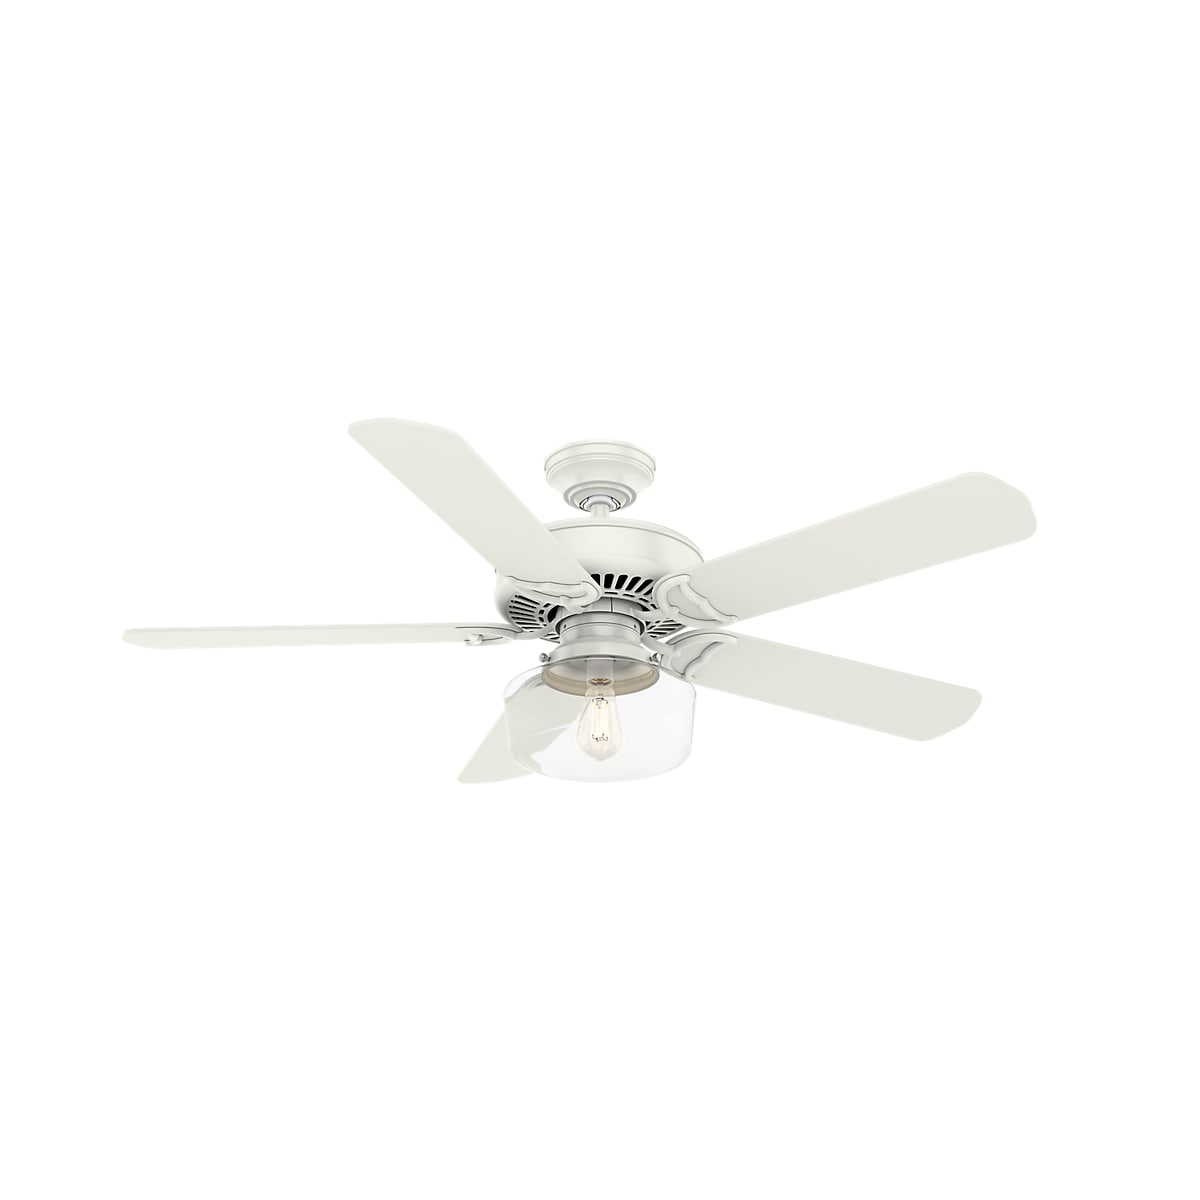 Casablanca 55082 Fresh White Panama 54 5 Blade Indoor Ceiling Fan Wall Control And Light Kit Included Lightingdirect Com